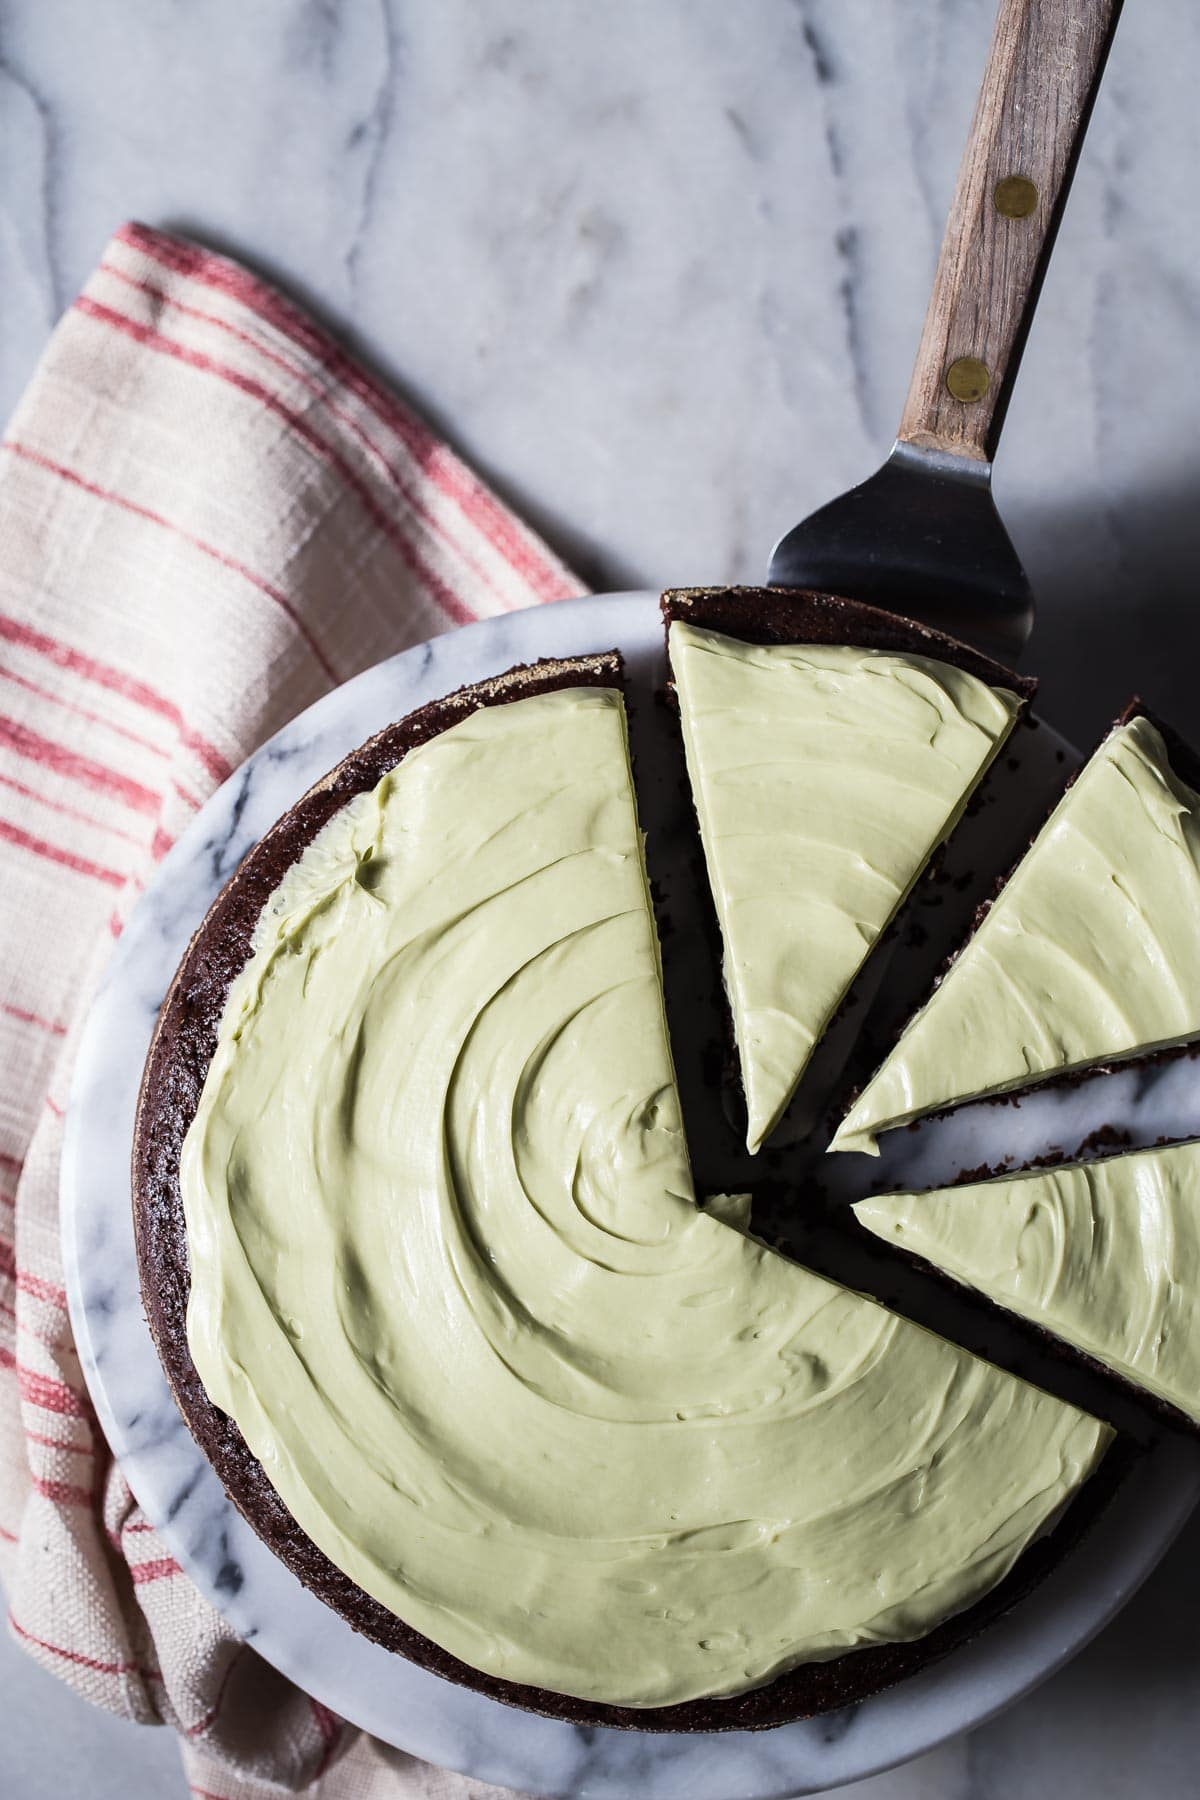 A rich dark chocolate zucchini cake covered in a sweet cream cheese matcha frosting. This cake is gluten free and tastes epic! Grab the recipe from Alternative Baker and show the world how you rock in the kitchen!